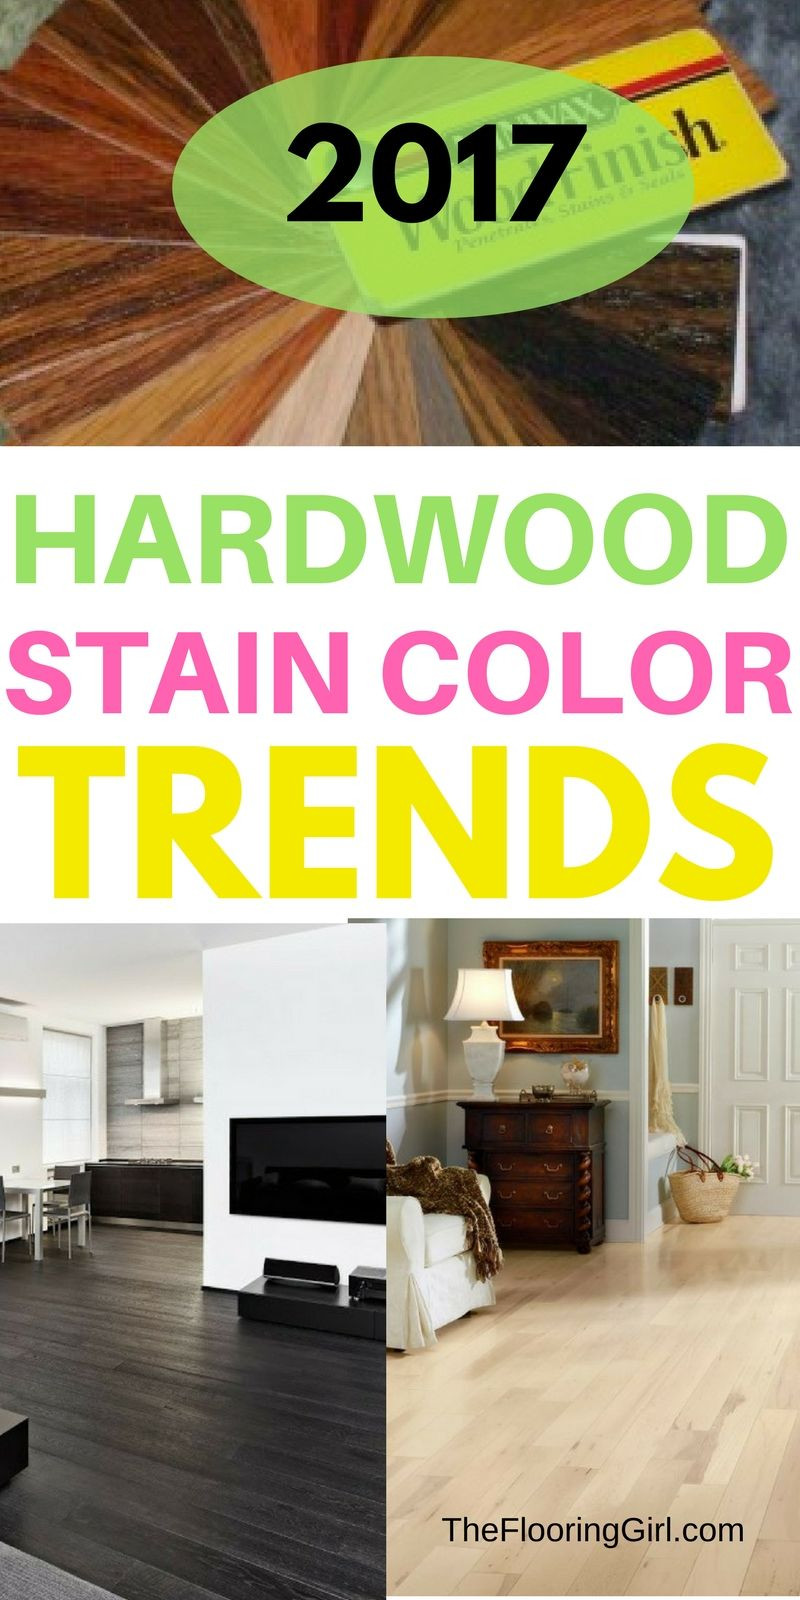 hardwood floor stain colors popular of hardwood flooring stain color trends 2018 more from the flooring regarding hardwood flooring stain color trends for 2017 hardwood colors that are in style theflooringgirl com